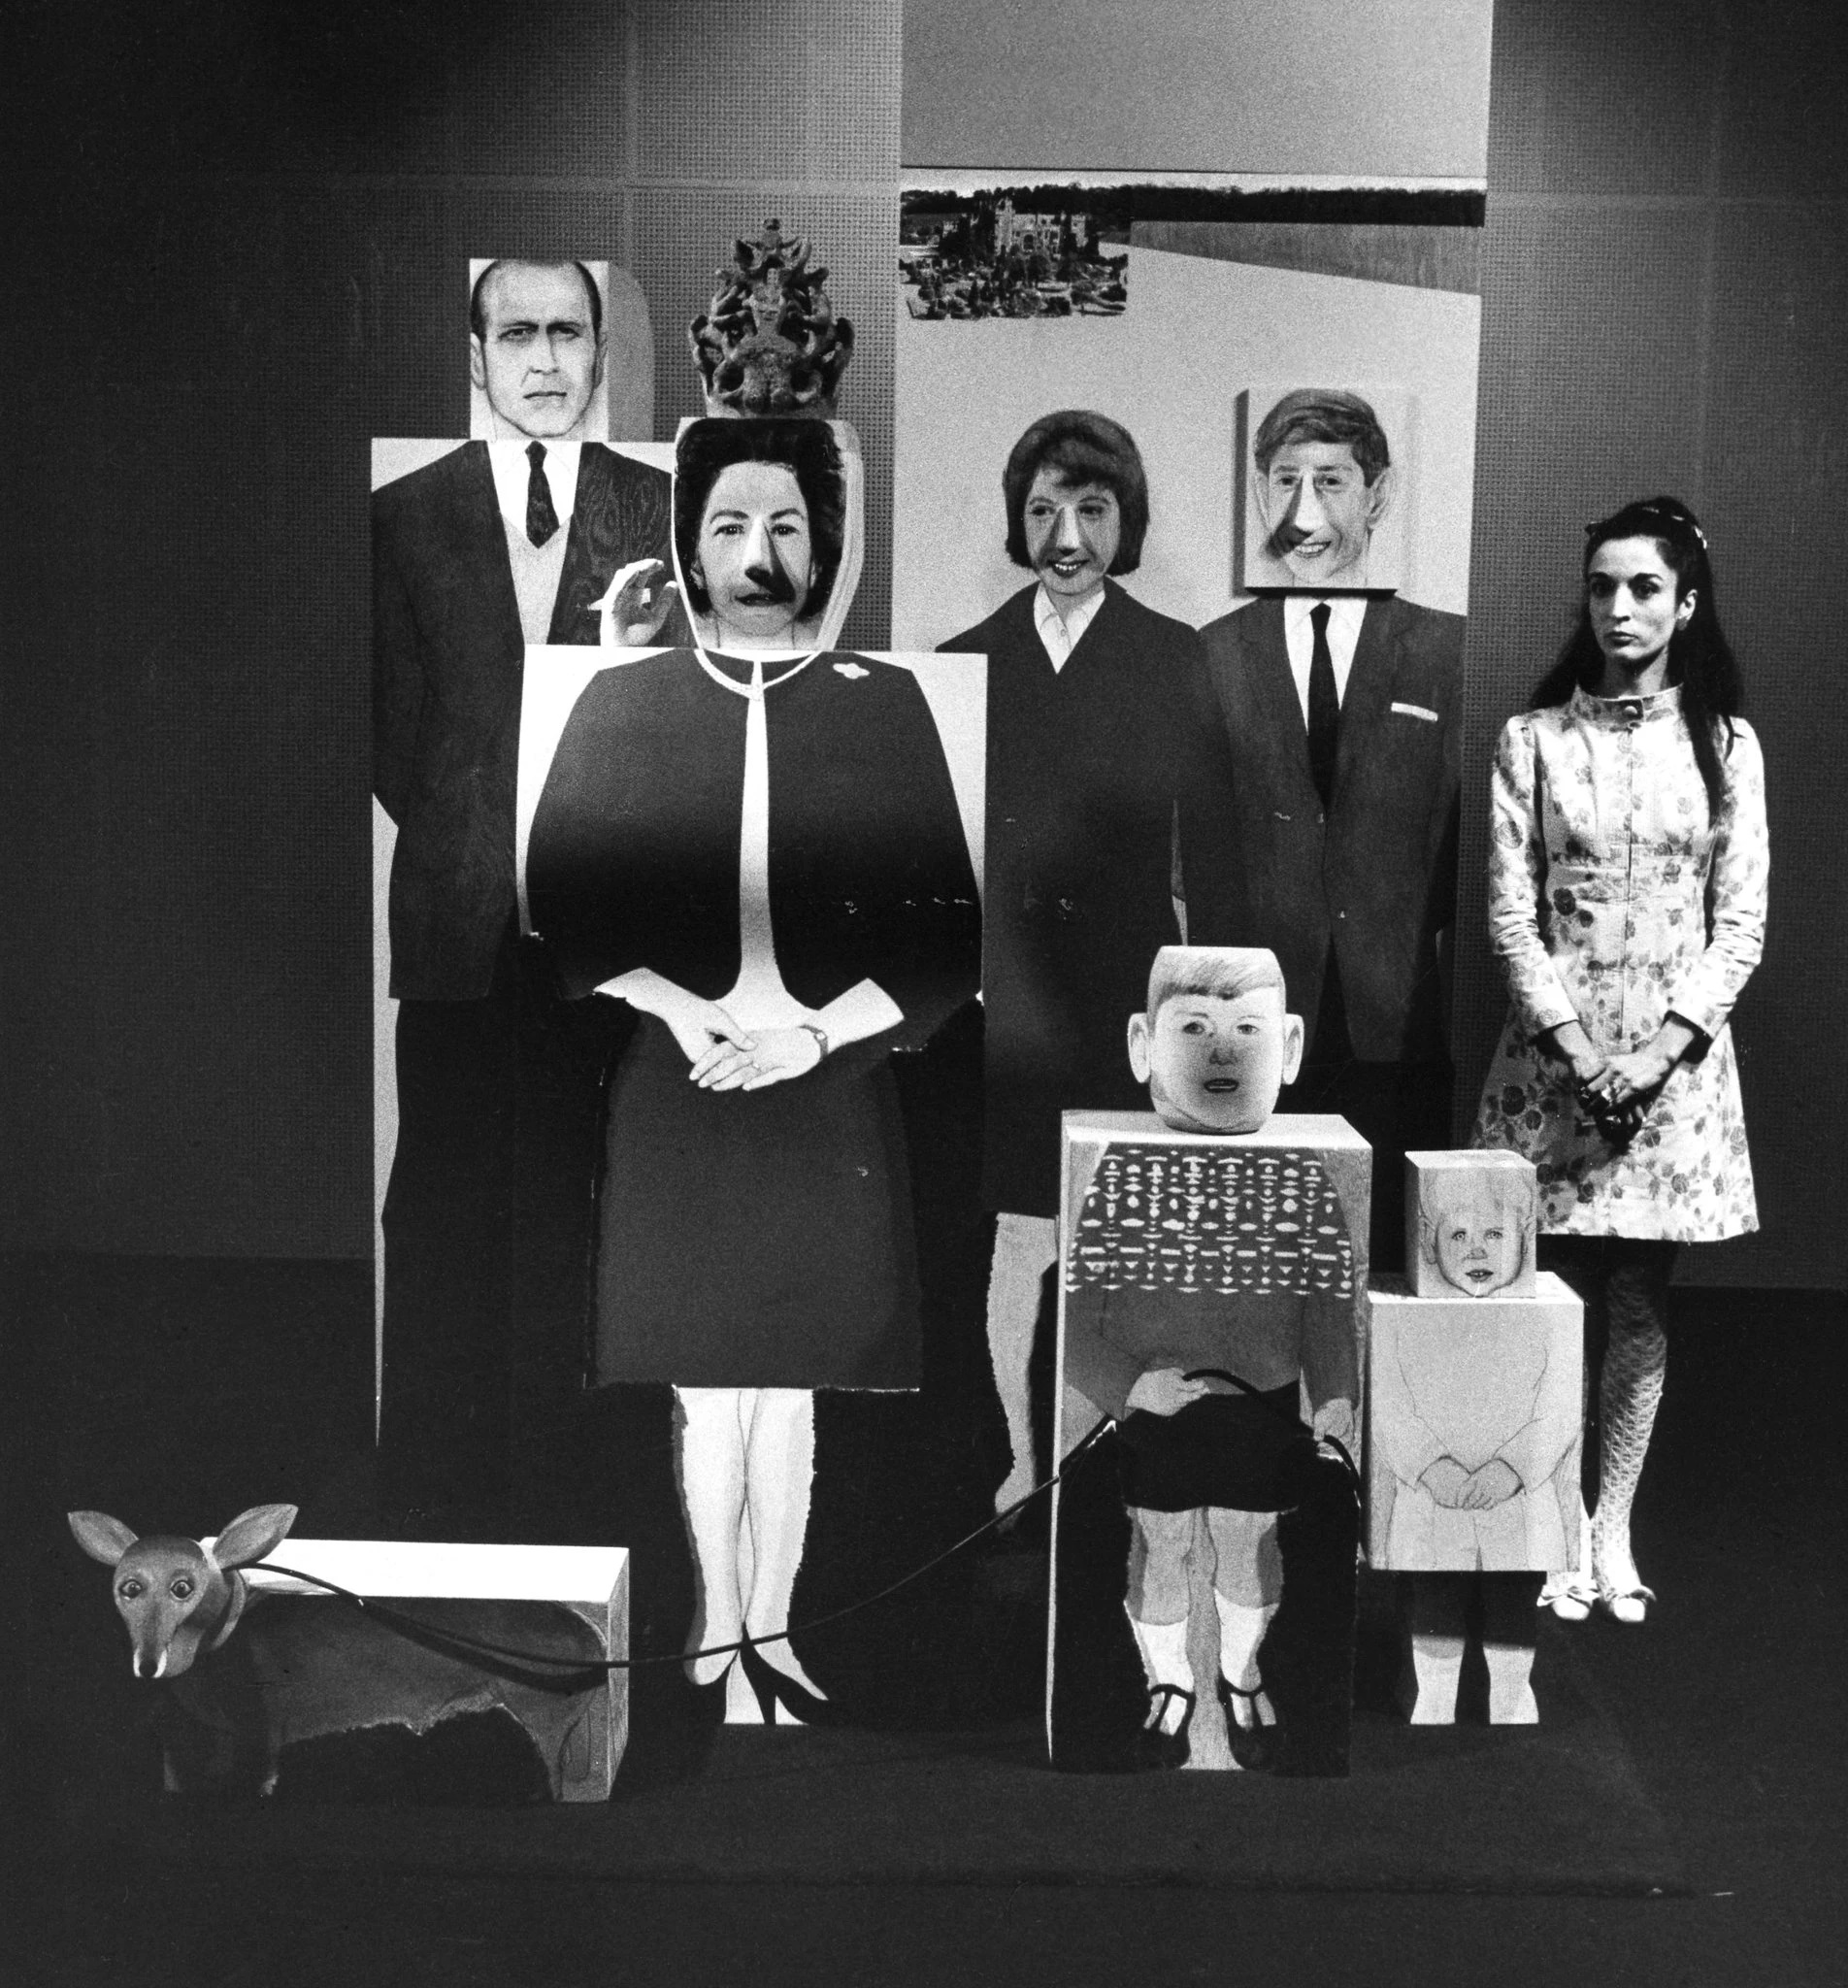 Marisol y The British royal family. Sidney Janis gallery 1967. Foto Jill Krementz